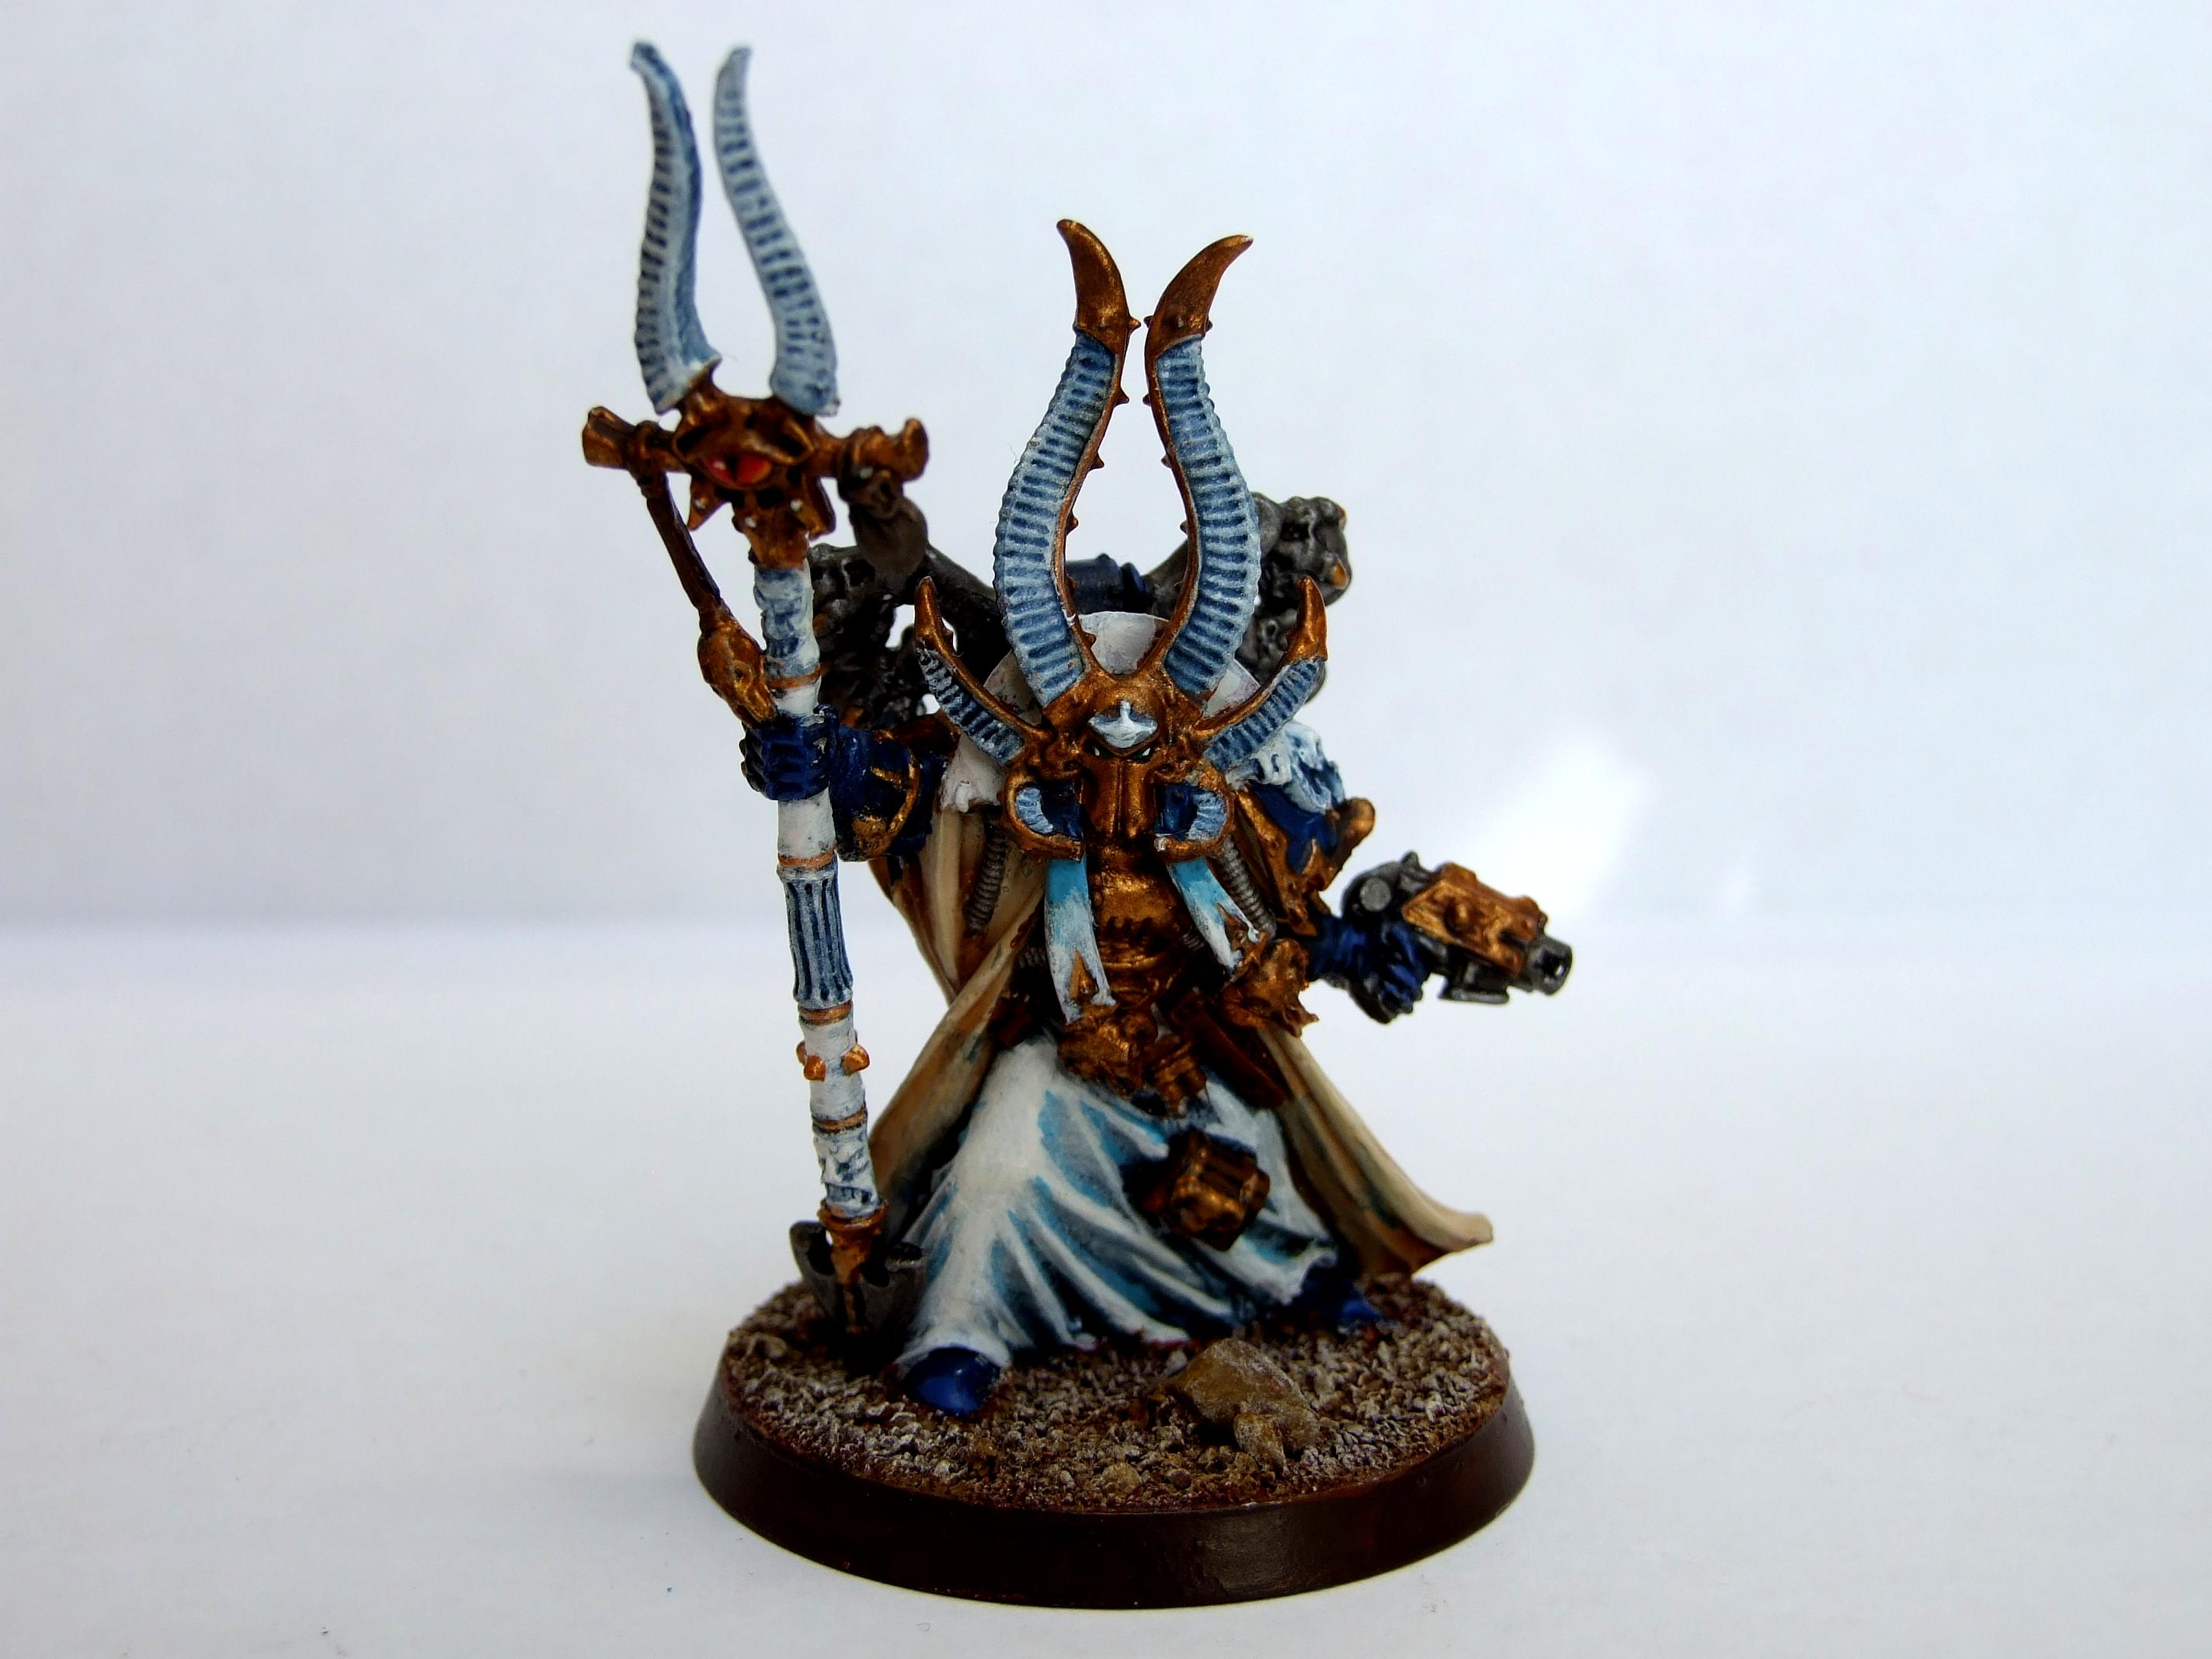 Arhiman, Chaos Space Marines, Physker, Sorcerer, Thousand Sons, Warhammer 40,000